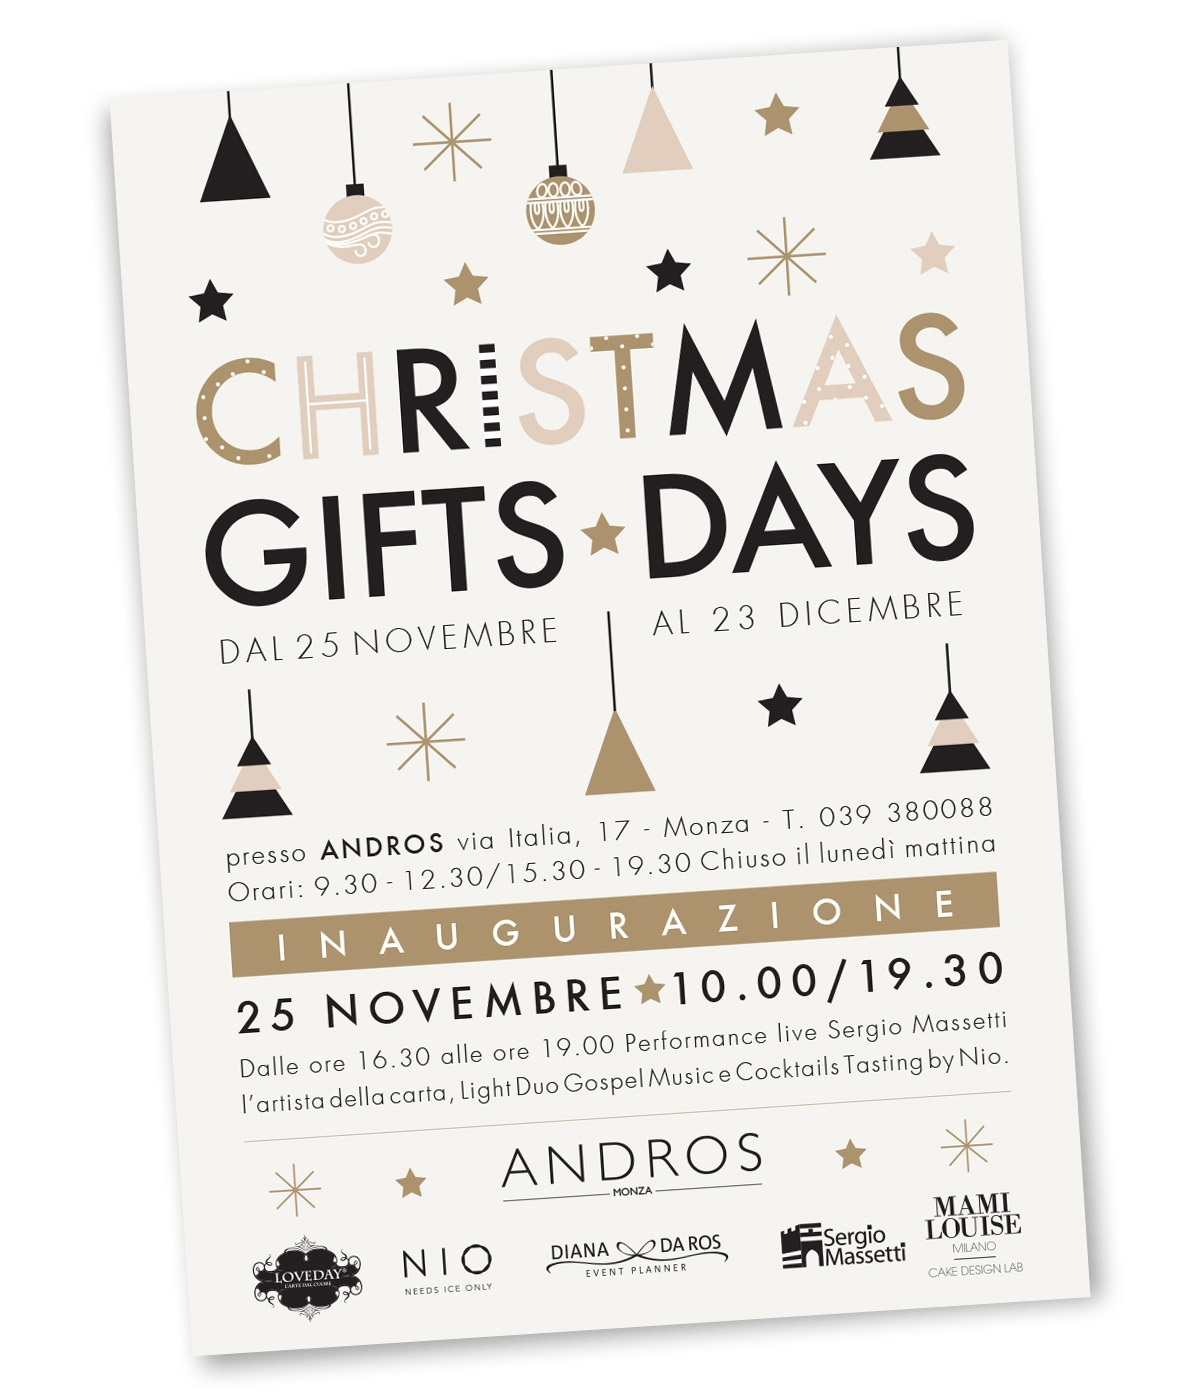 Tornano i CHRISTMAS GIFTS DAYS!